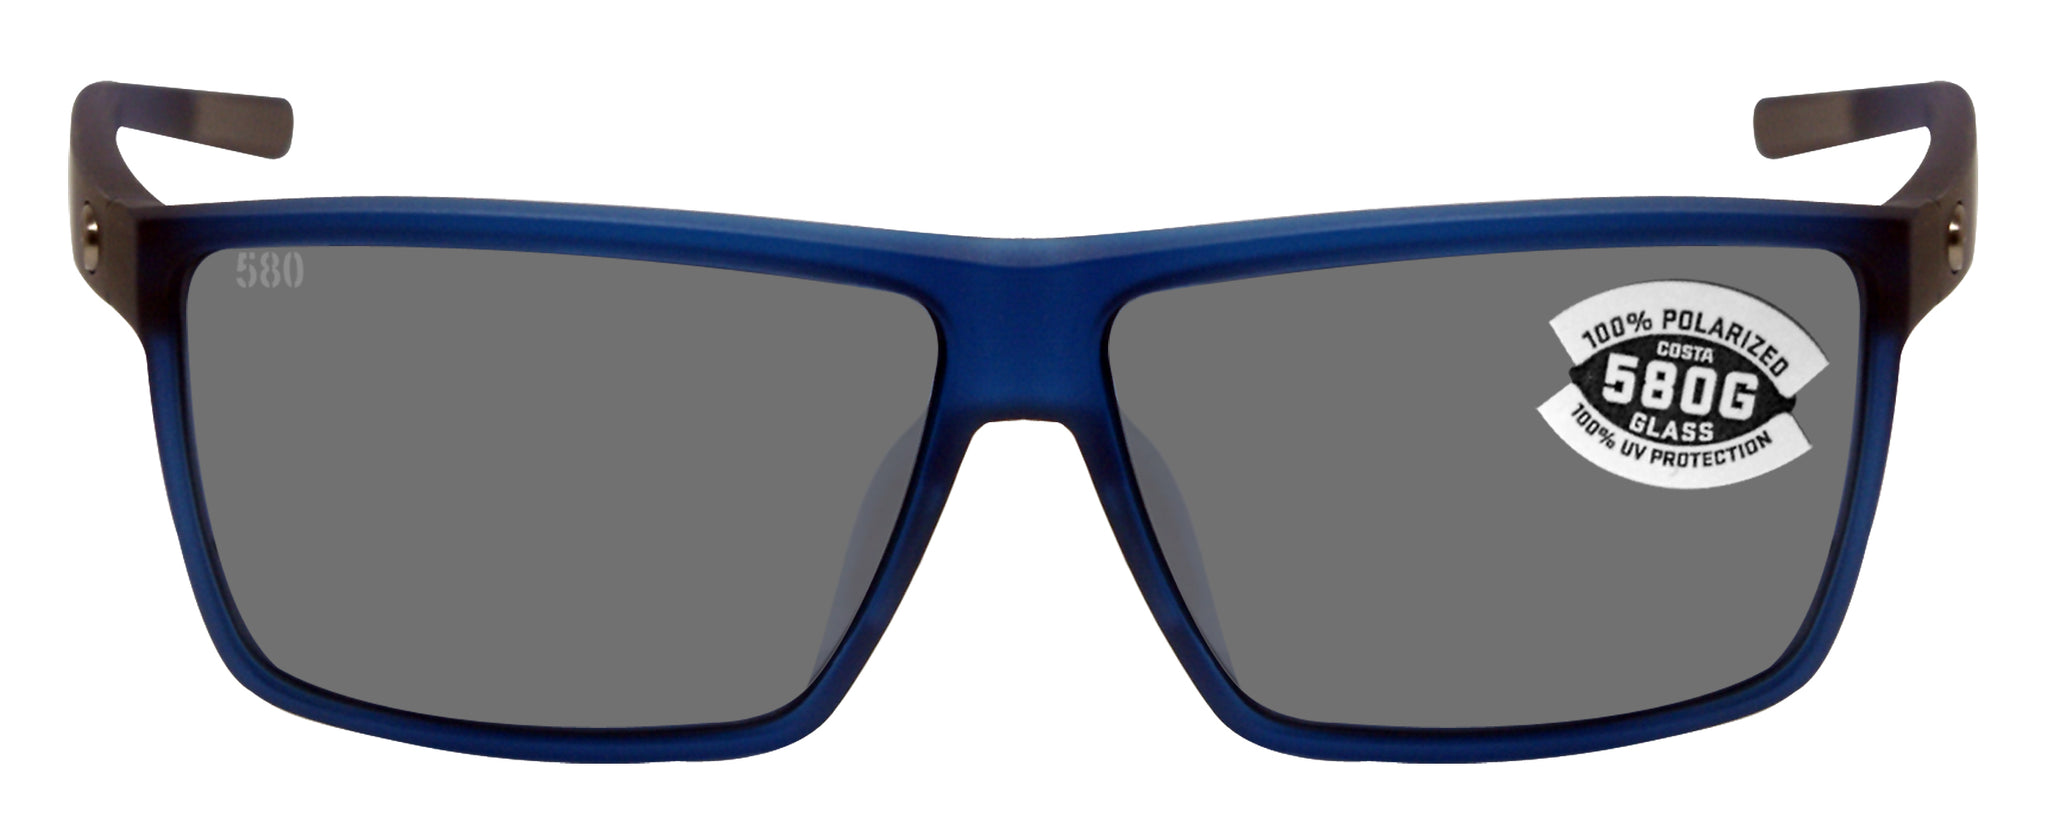 a4dd90c0fa ... Costa Del Mar Rincon Matte Atlantic Blue Frame Gray 580G Glass  Polarized Lens ...